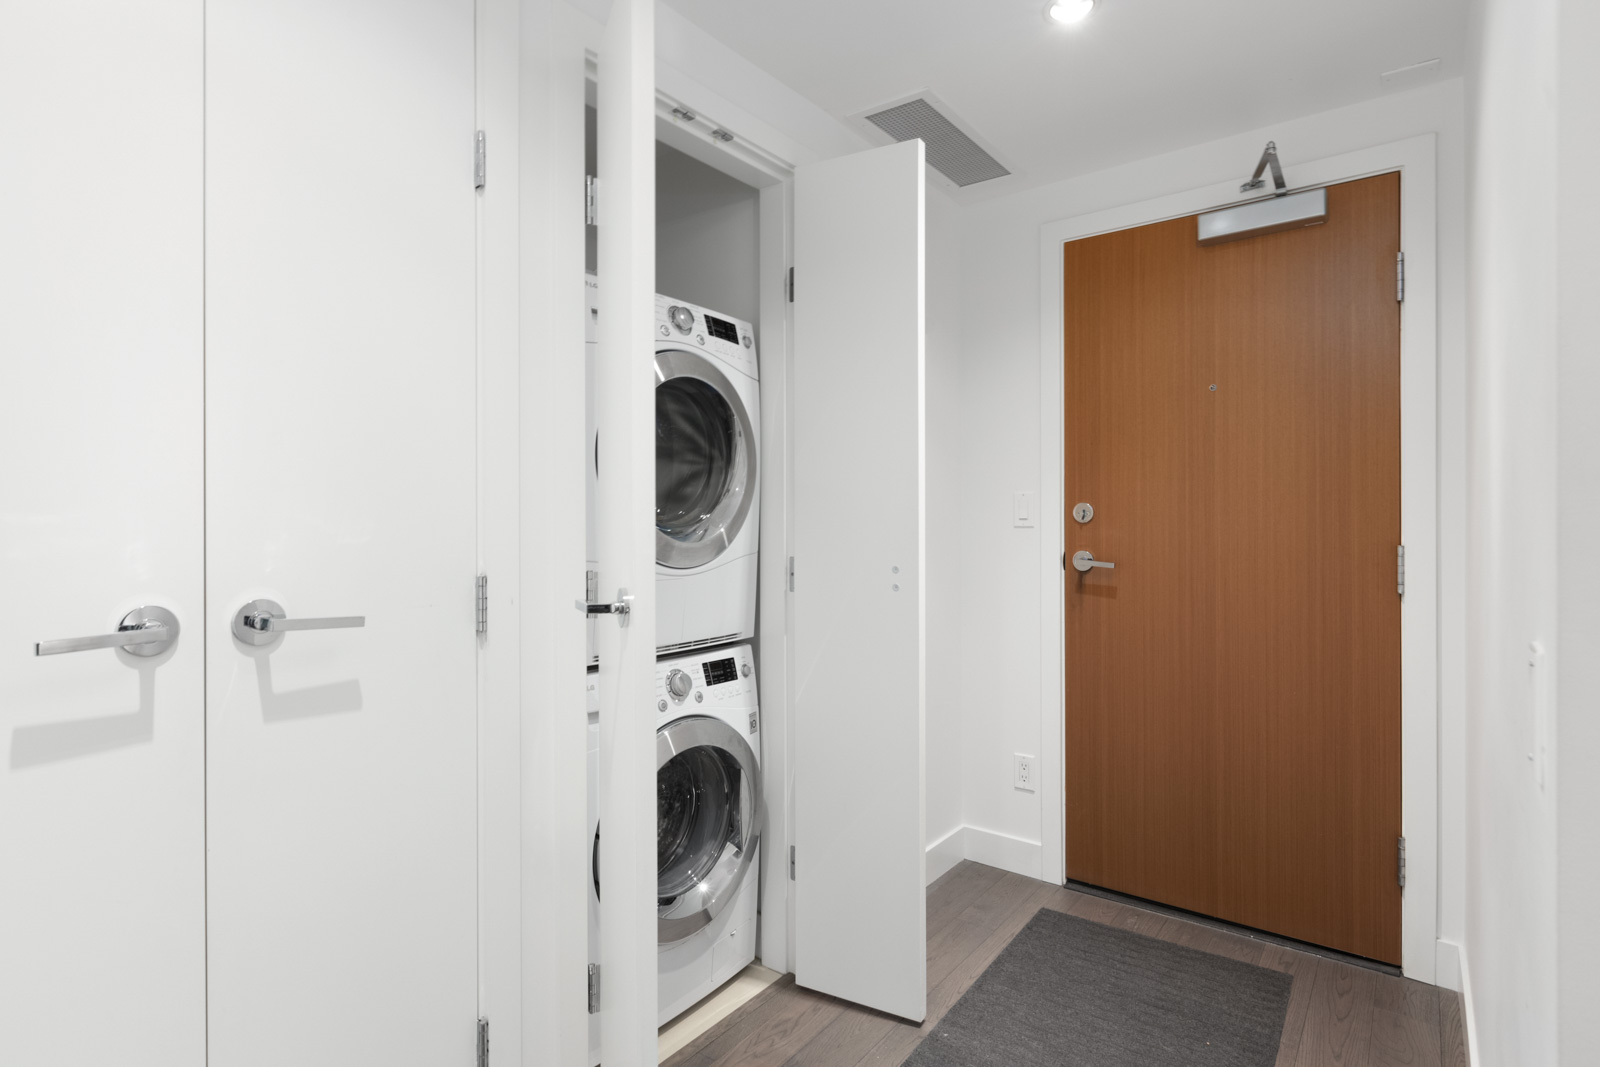 partial view of stacked white washer and dryer with white door on the left and darker wood entrance door to condo unit on the right